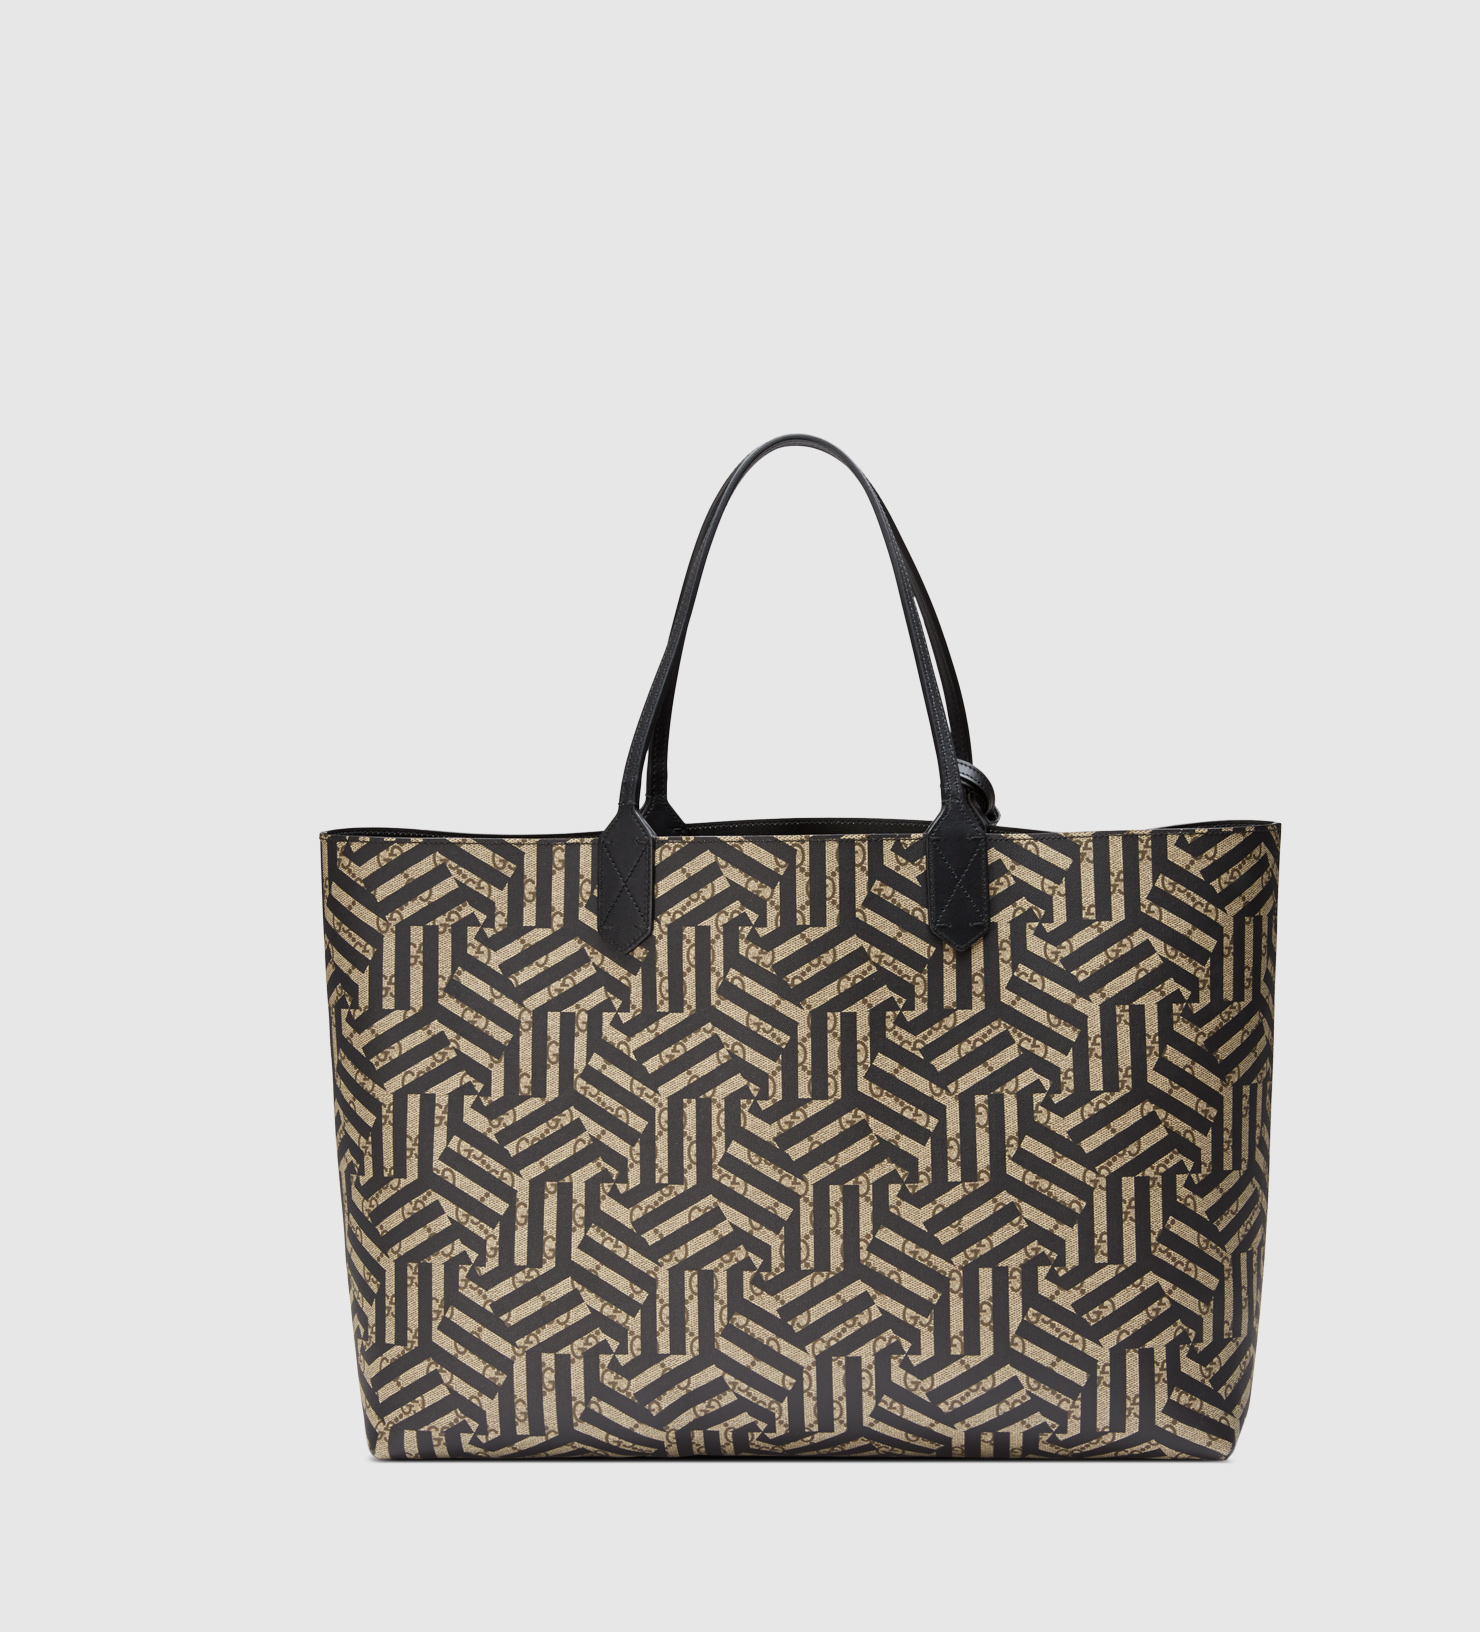 552c3349537f Gucci Reversible Gg Caleido Leather Tote in Natural for Men - Lyst